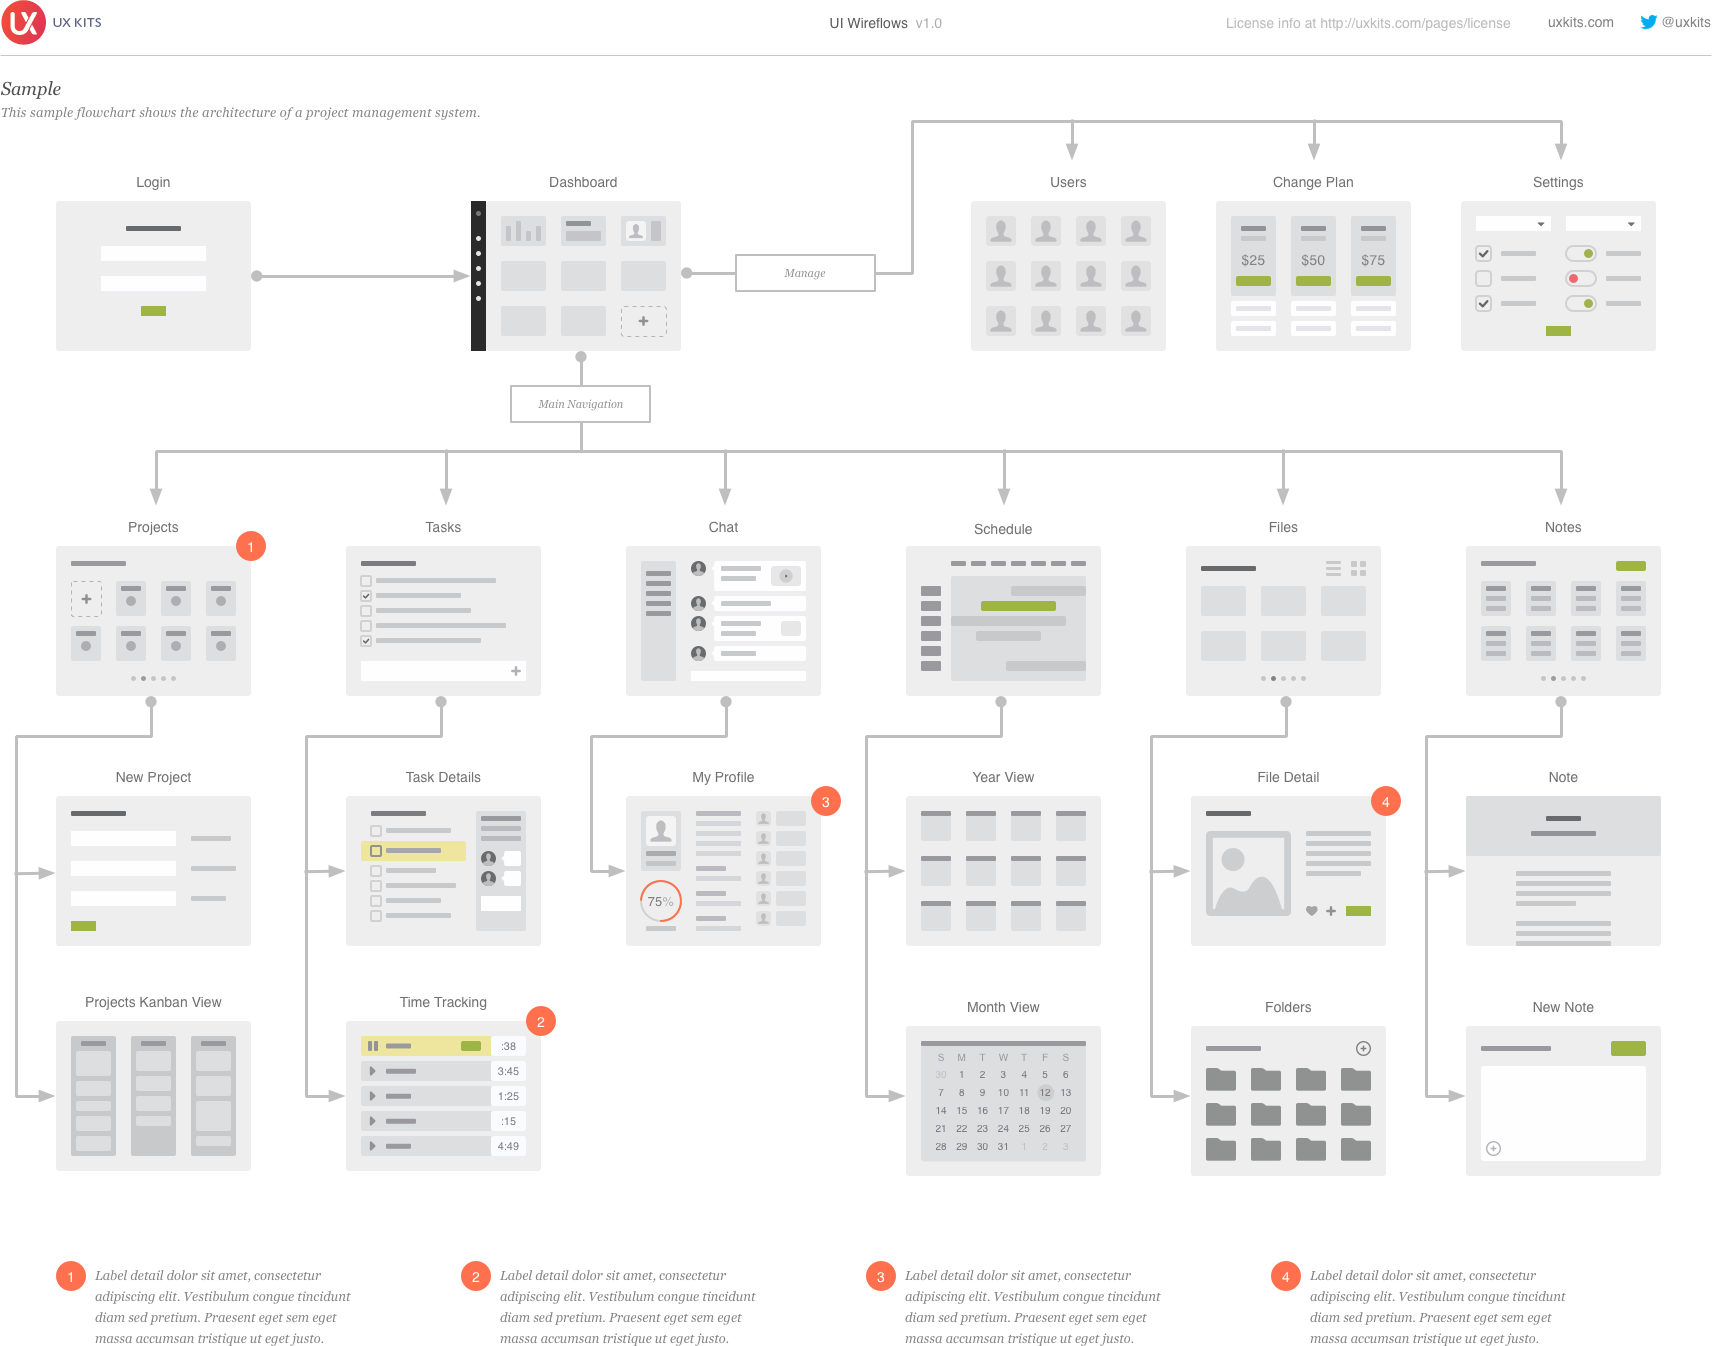 Stunning Tremendous Flowchart Tool Picture Inspirations Images ...